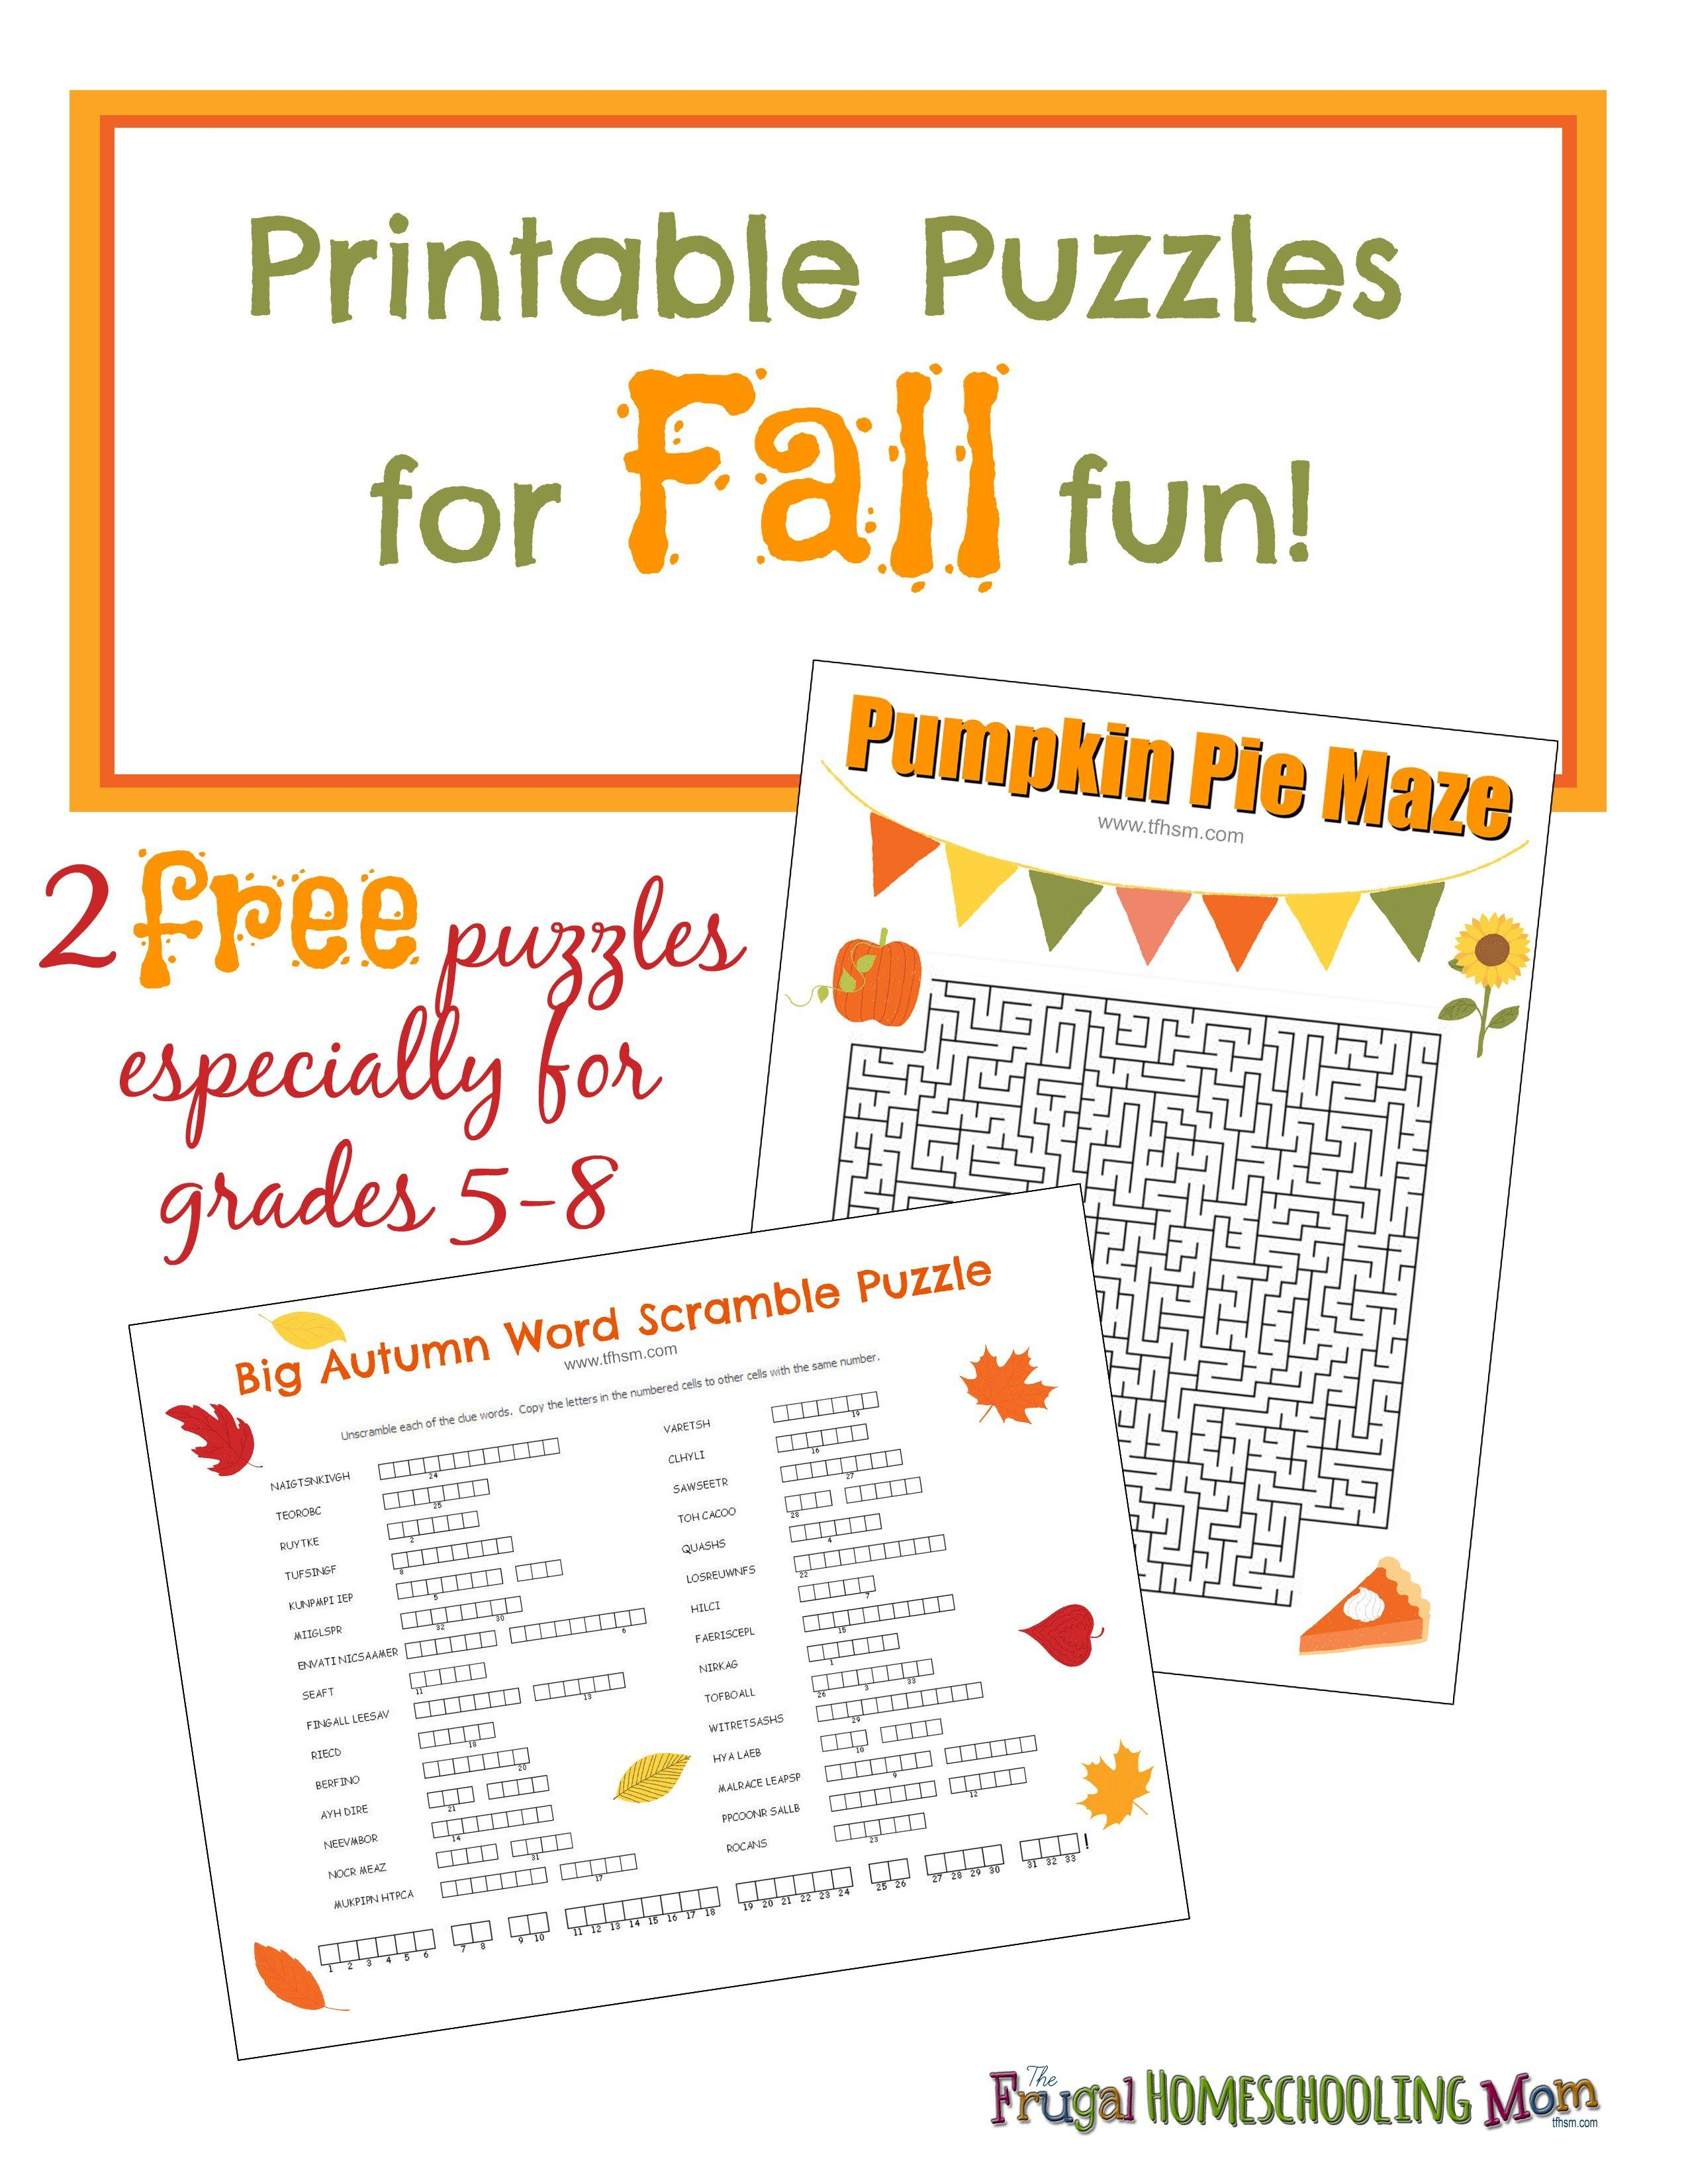 Free Fall Printable Puzzles Middle School Activities Free Homeschool Printables Homeschool Printables [ 3300 x 2550 Pixel ]